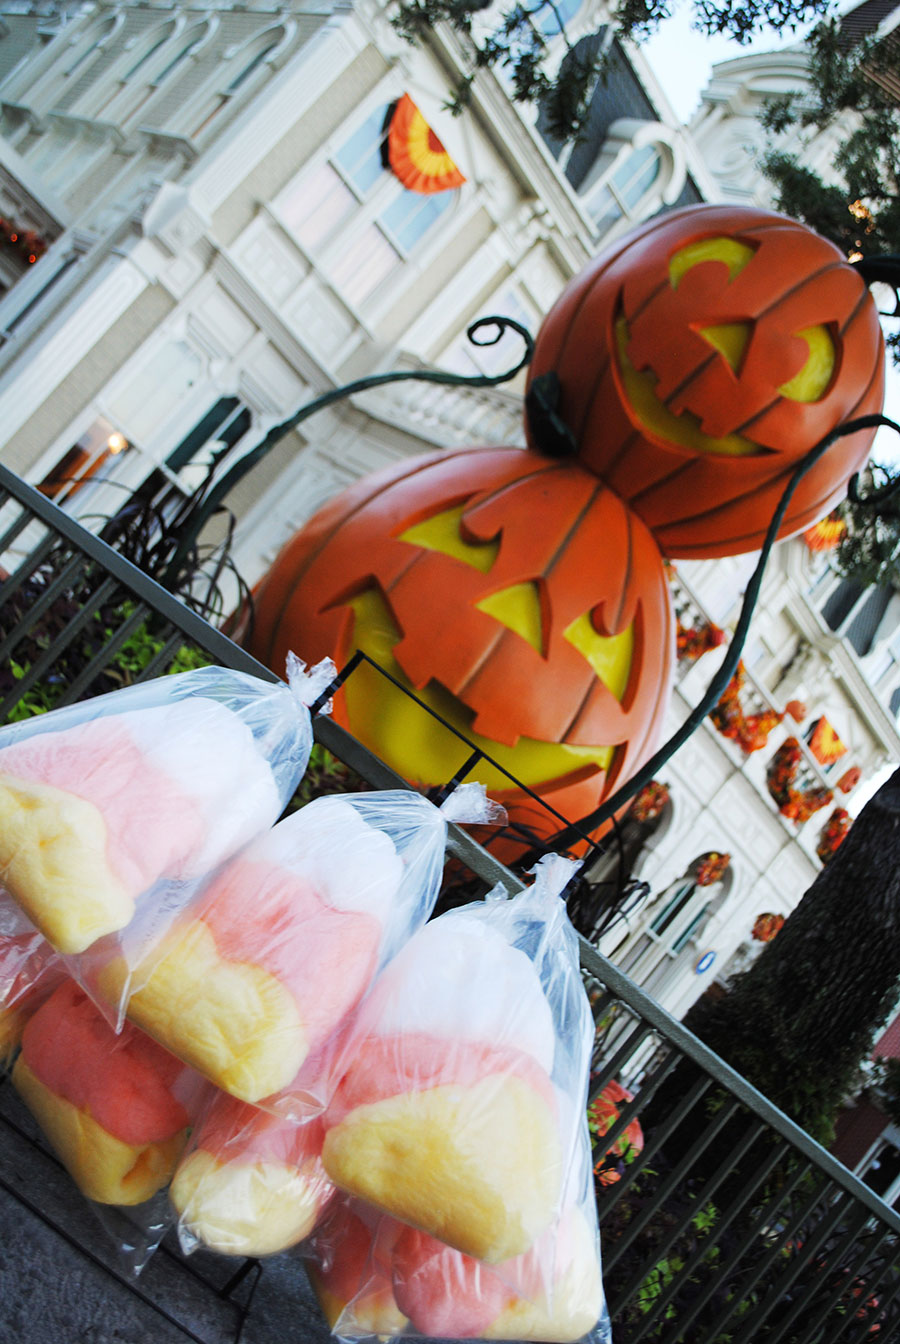 No Tricks, Just Treats at Mickey's Not-So-Scary Halloween Party at ...